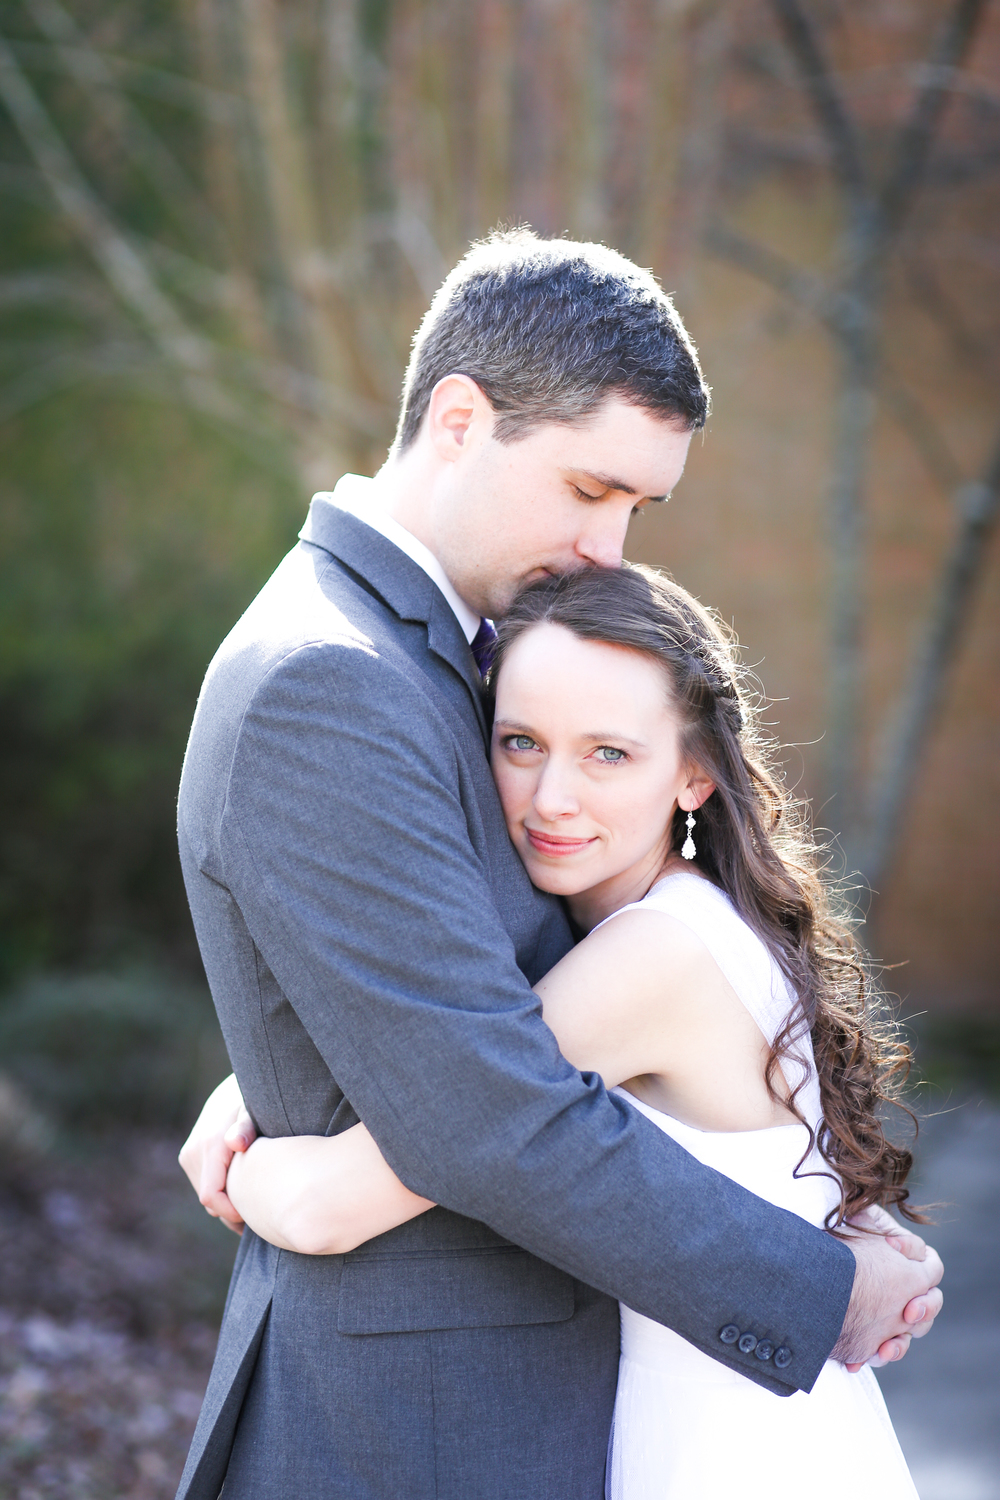 The year kicked off with Hannah & Josh's winter wedding in Hattiesburg <3